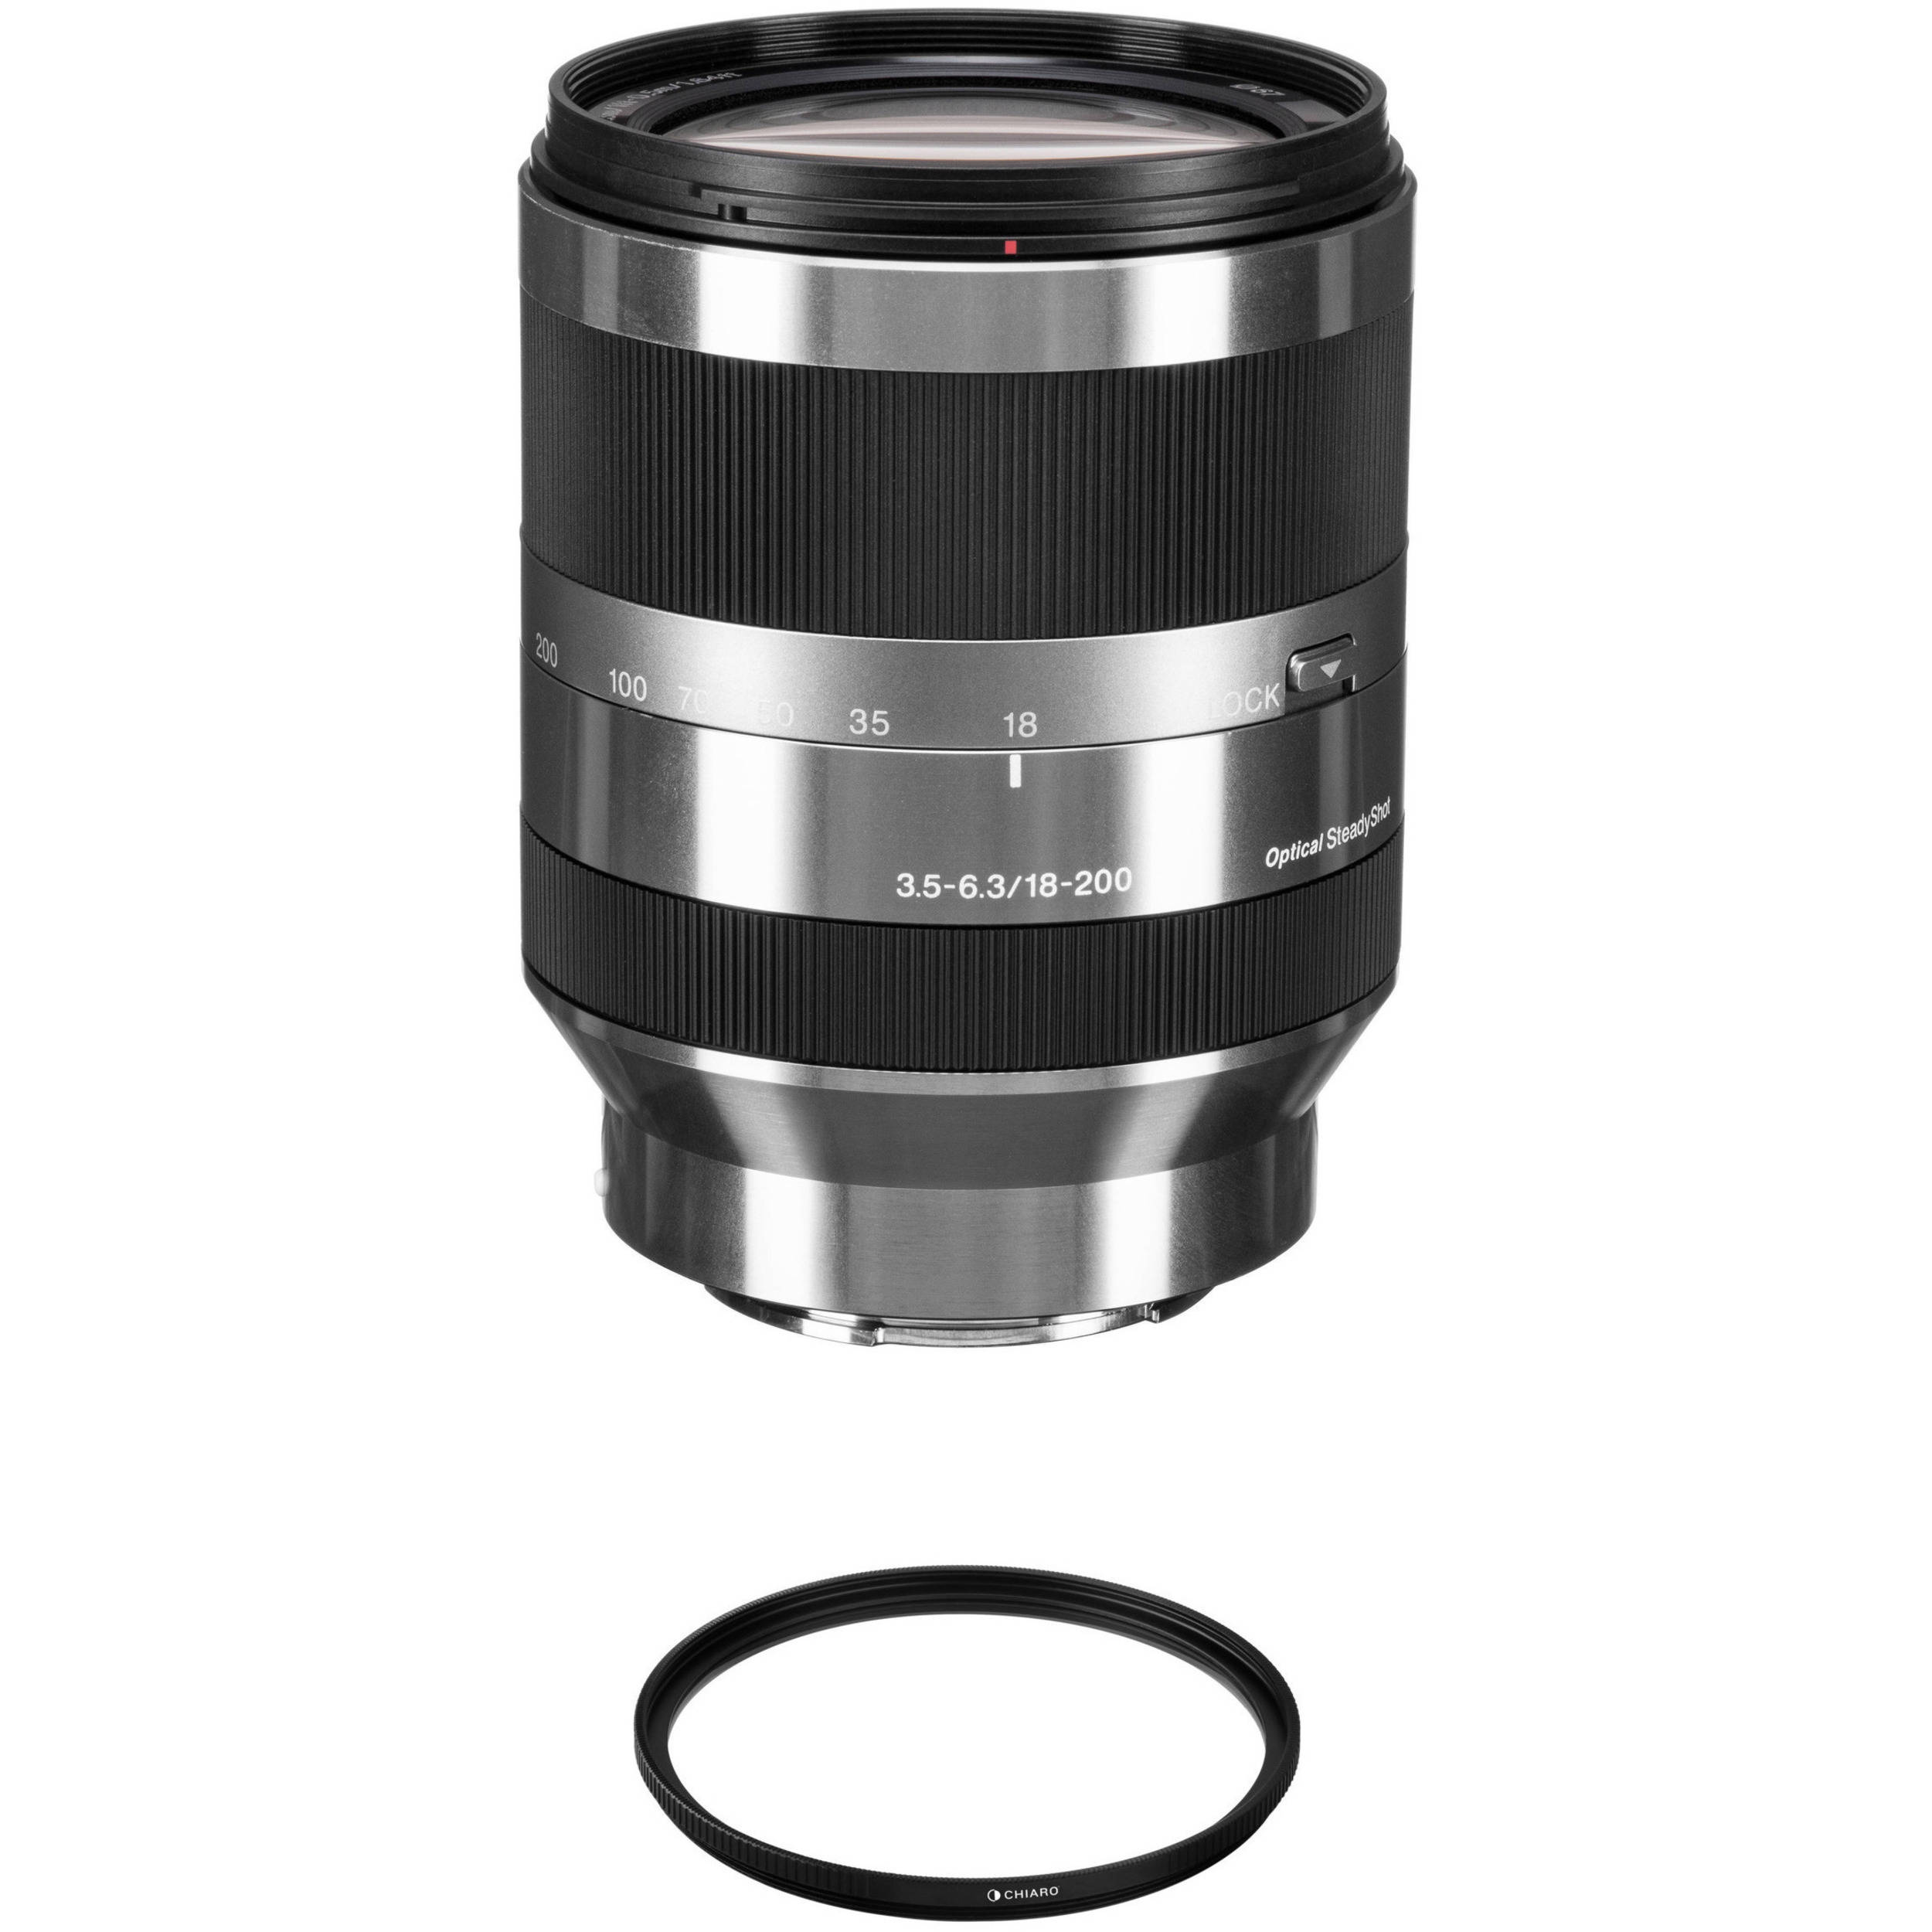 Gadget Place 67mm UV Filter for Sony E PZ 18-200mm F3.5-6.3 OSS